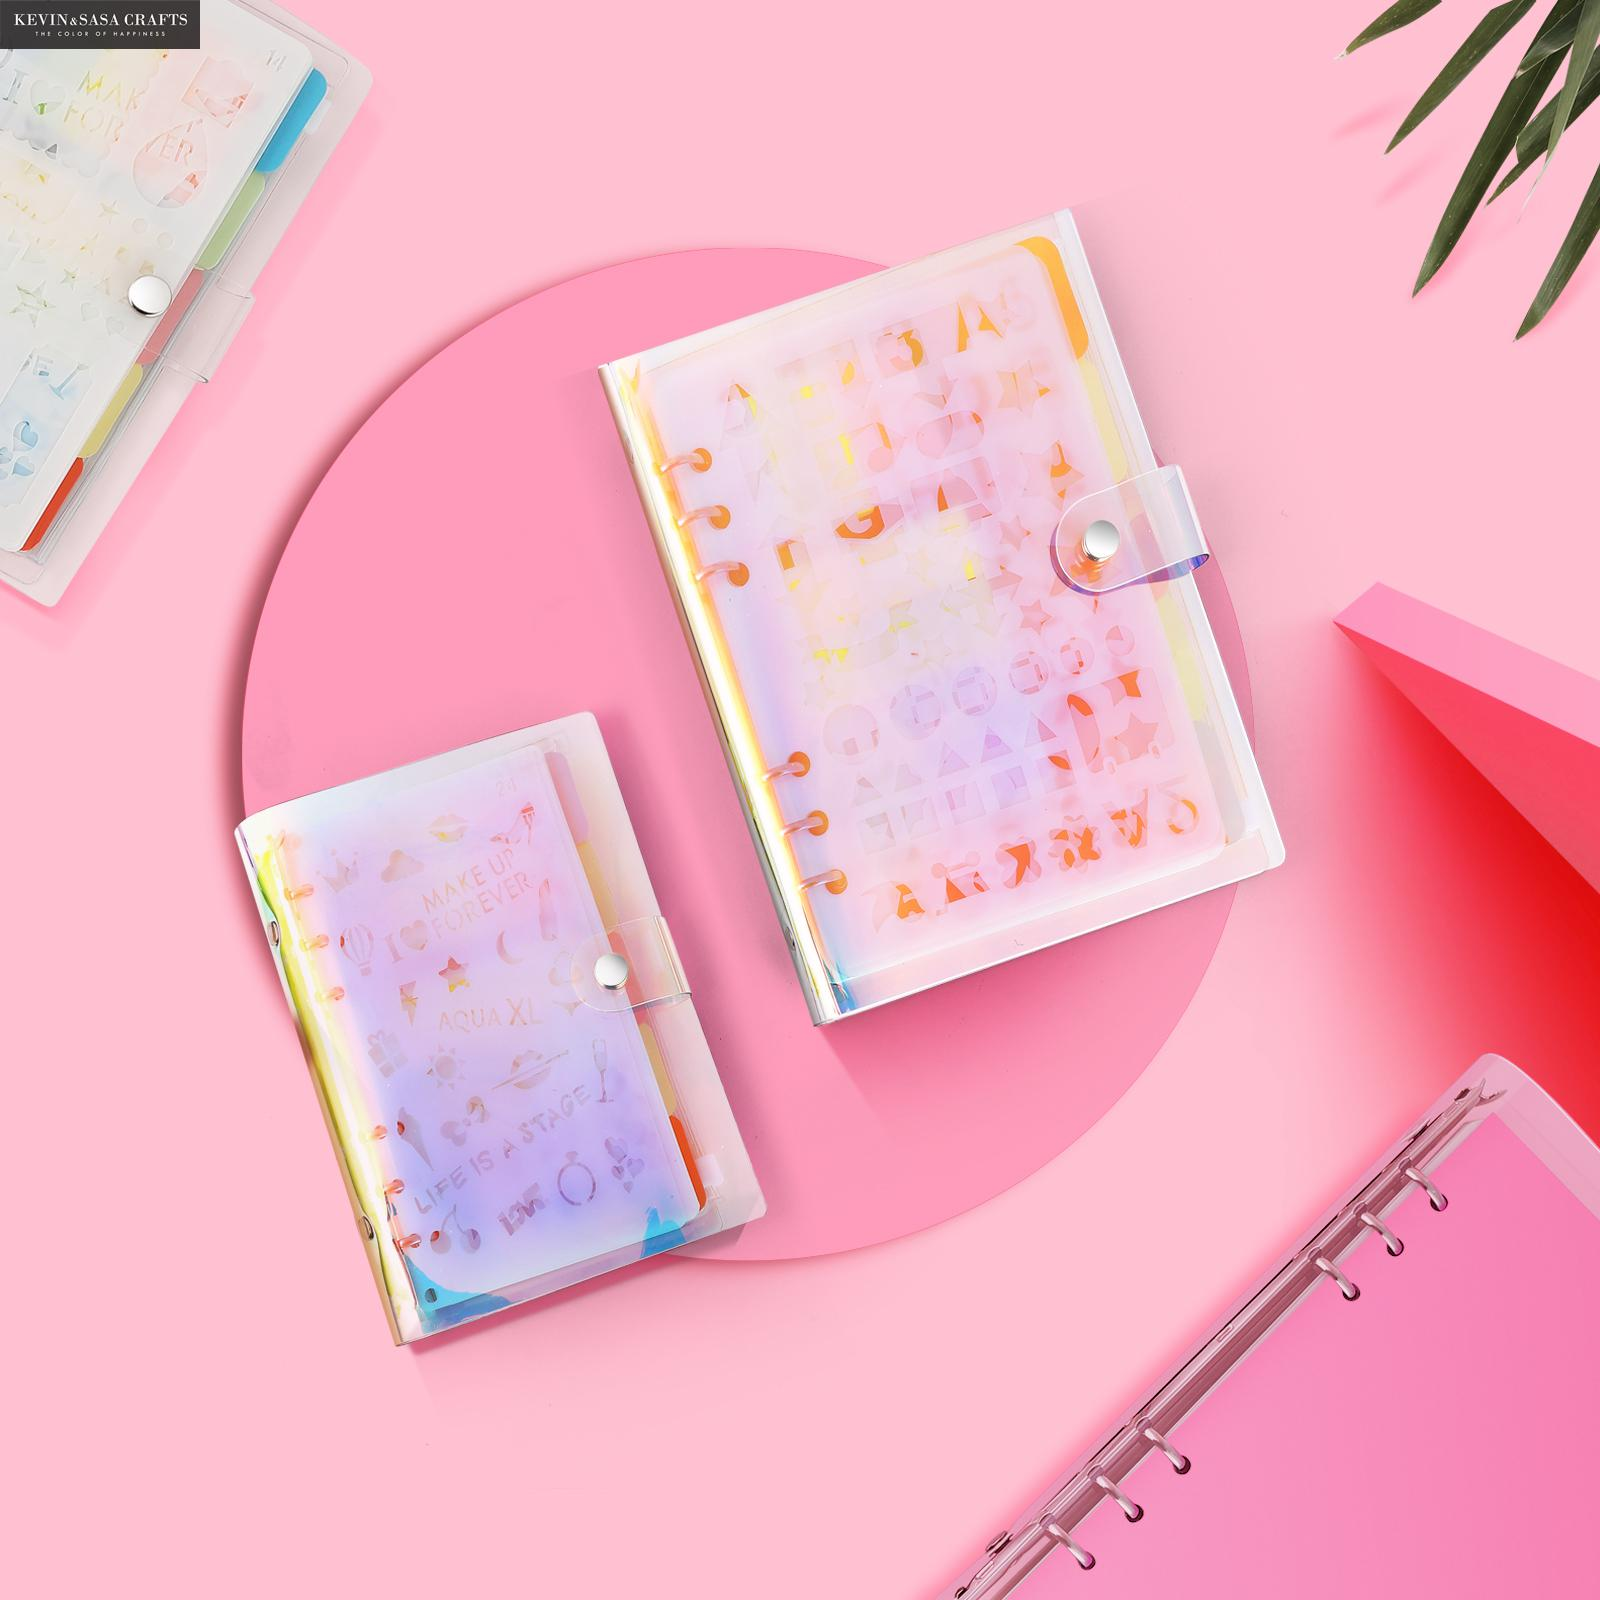 2019 A5 A6 Dotted Bullet Journal Set Notebook Quality Set Diary Planner Stationery School Supplies Gift Tools Sketchbook